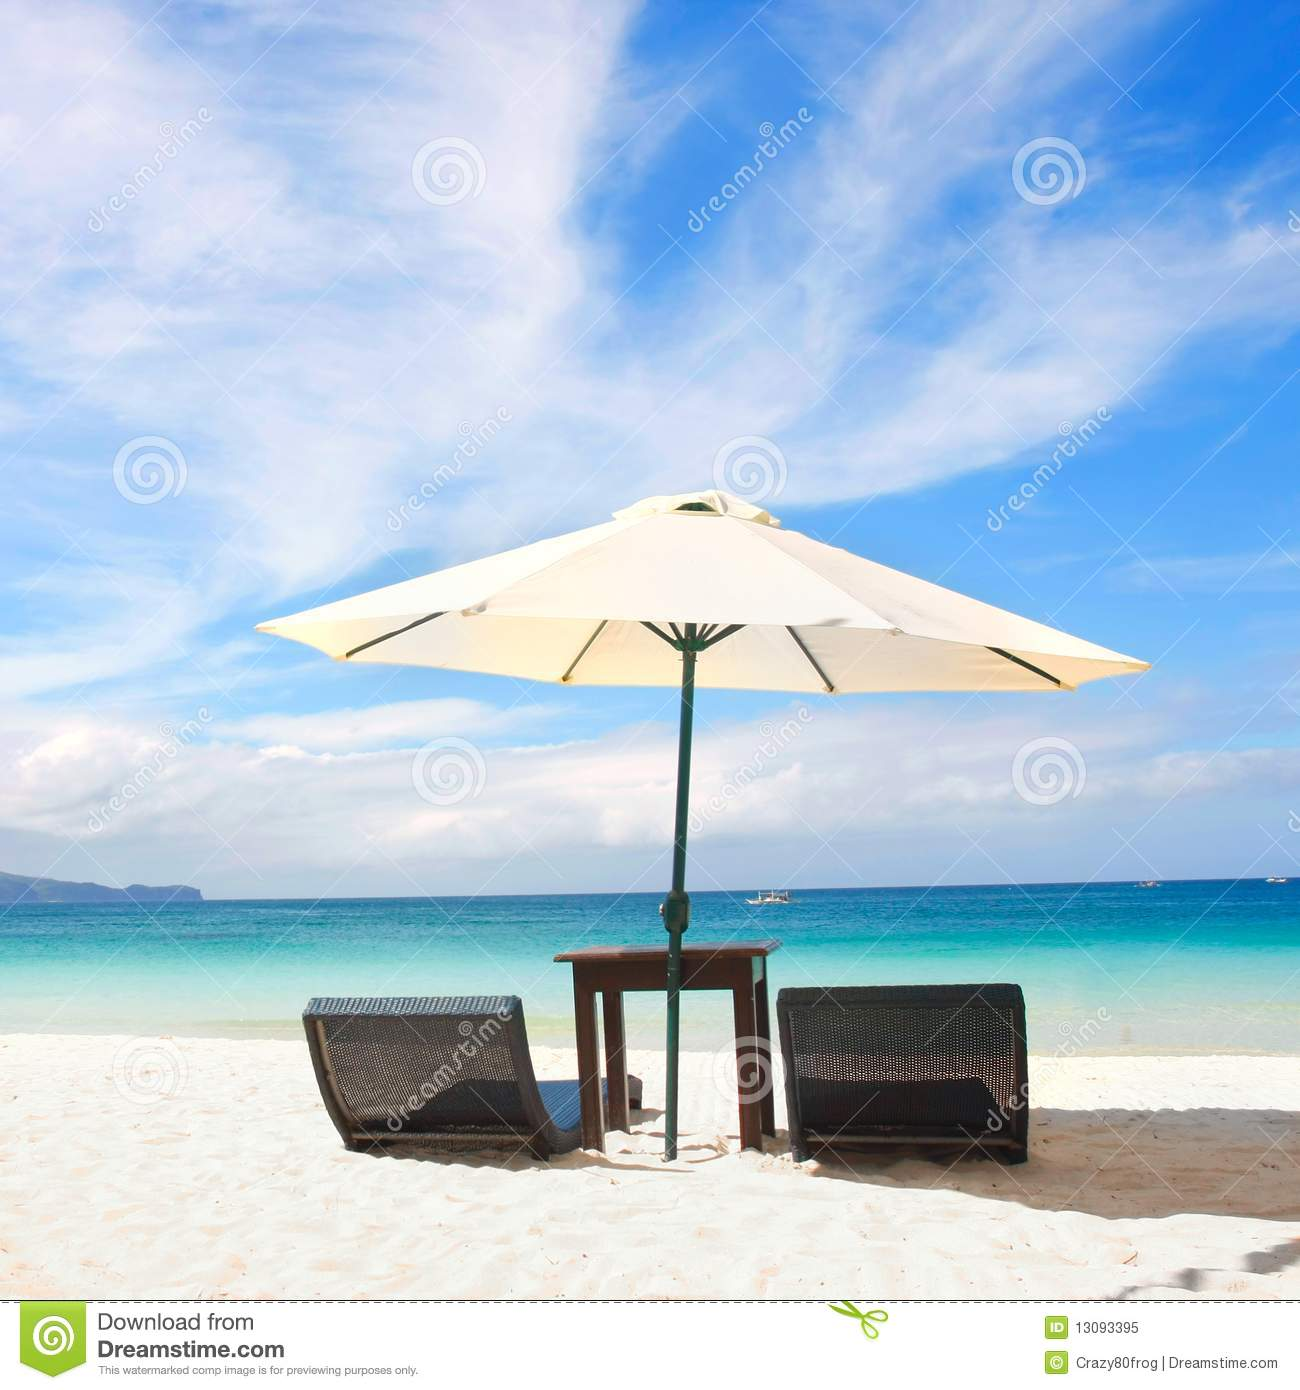 Beach Chairs With Umbrella Chairs And Umbrella On Beach Stock Image Image Of Coastline